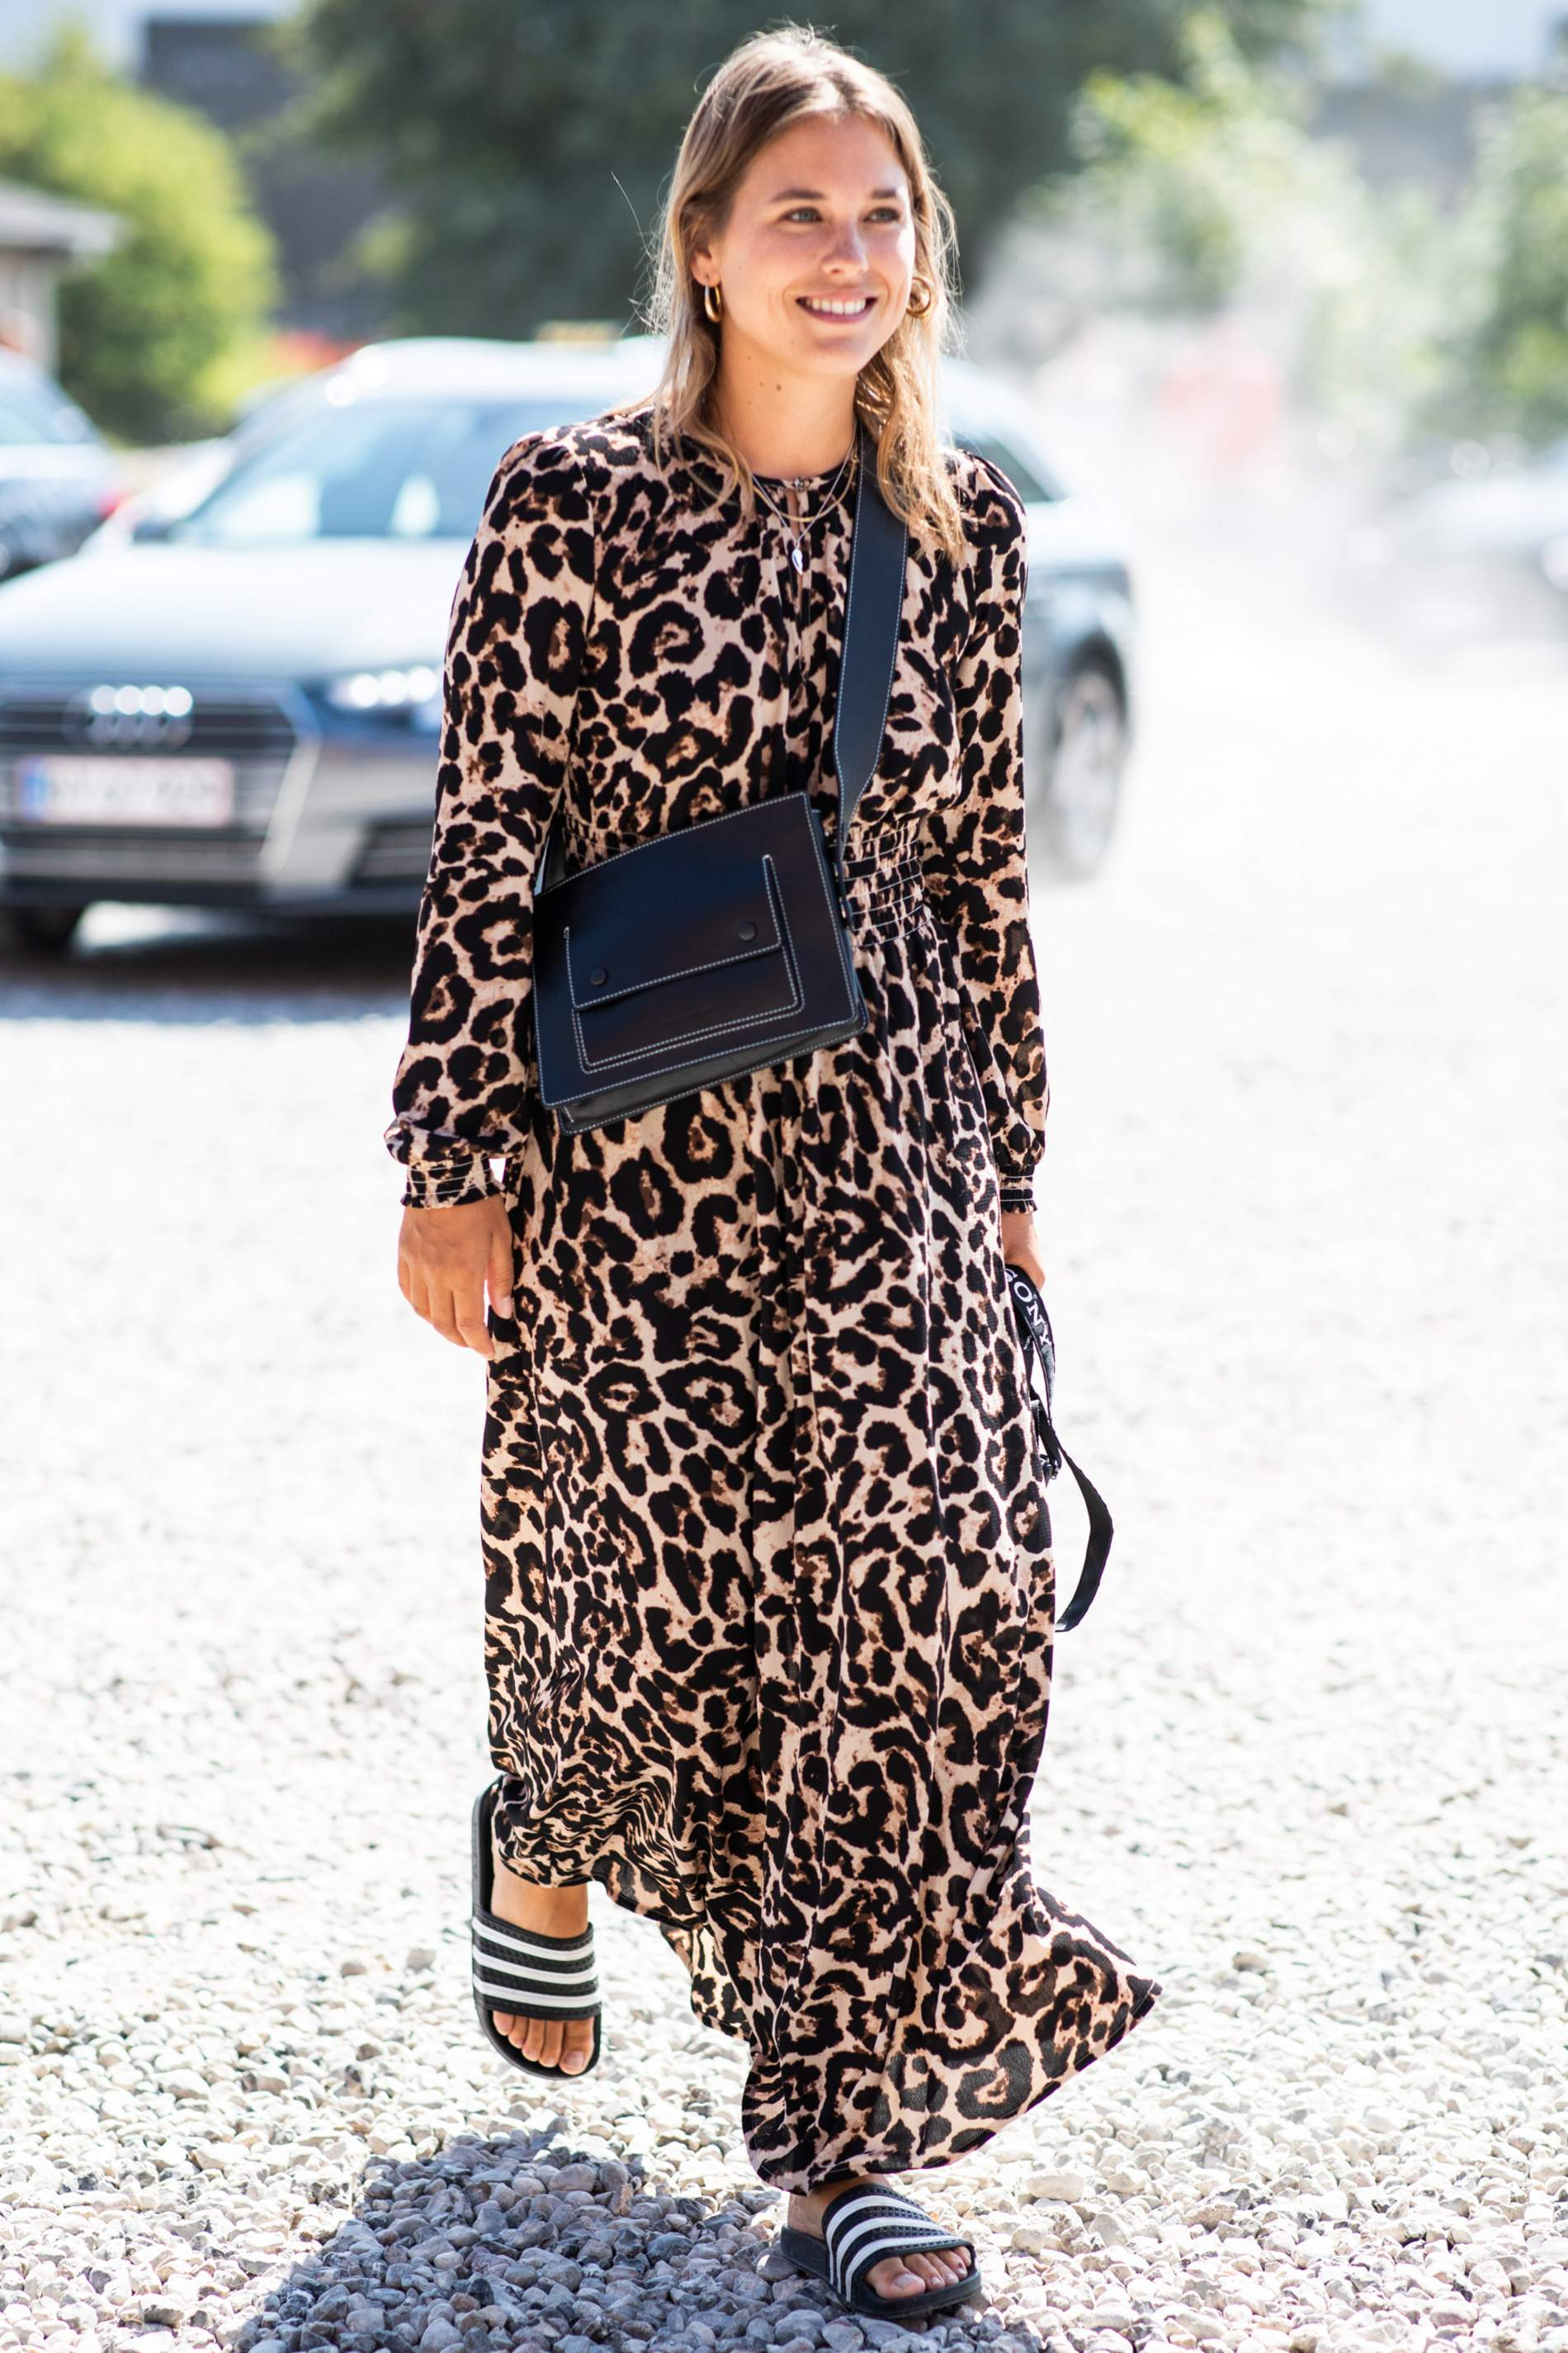 ed3855be6559 Animal Print: How To Wear These Classic Prints Like A Fashion Editor ...